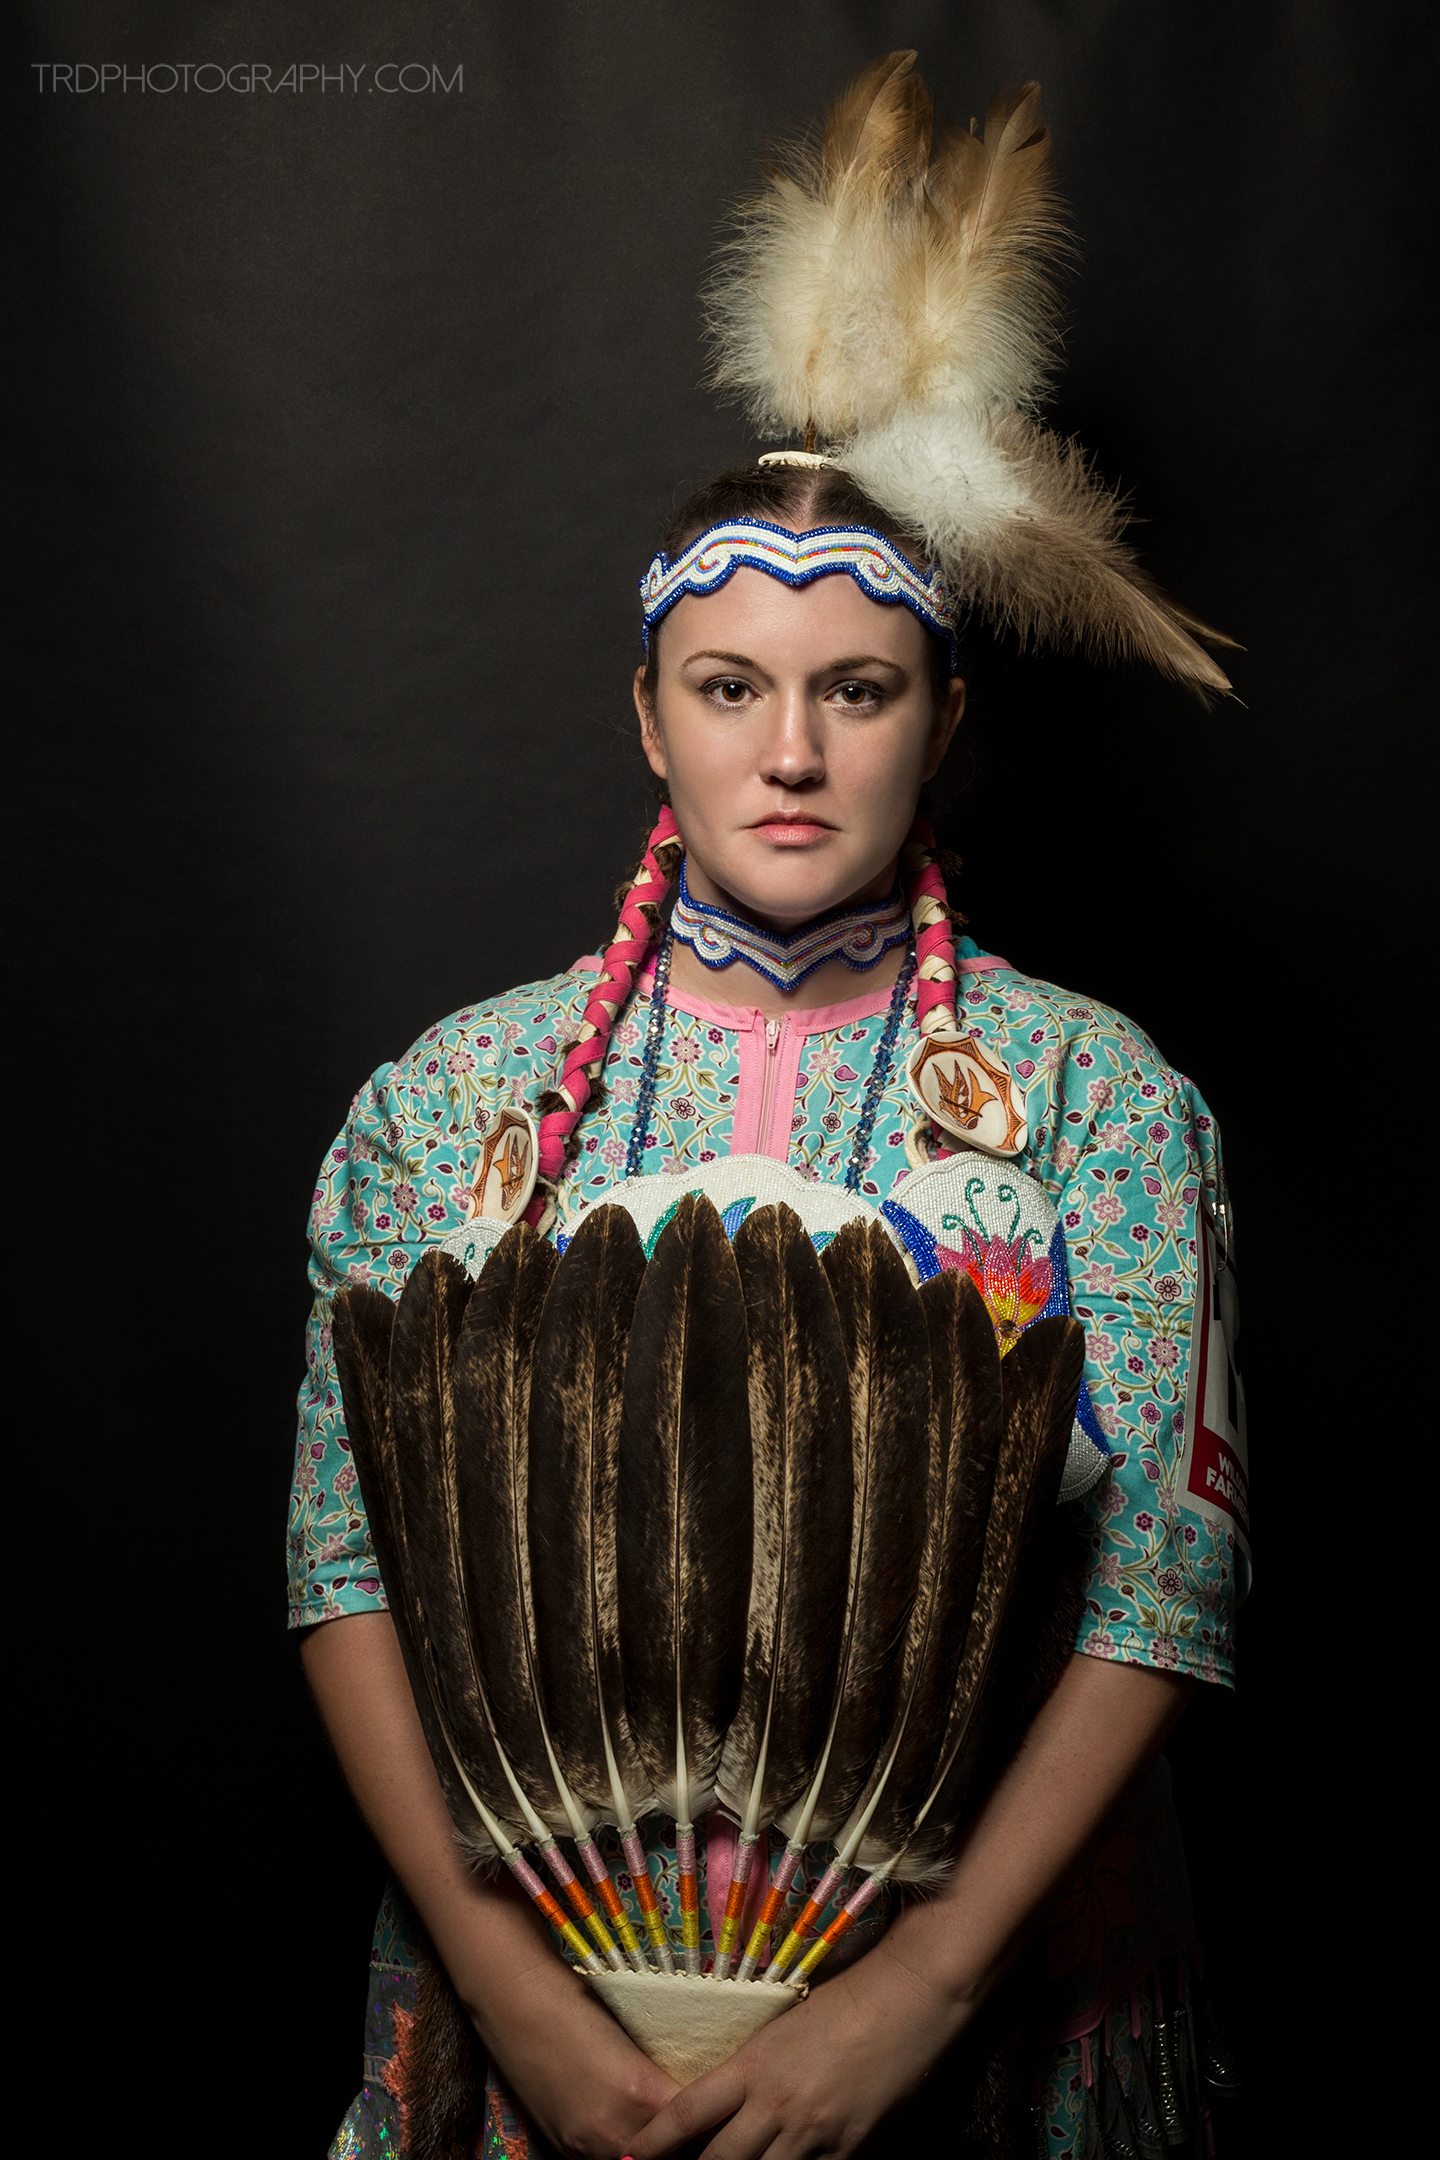 Native American Portraits - The Series - Amanda Starr